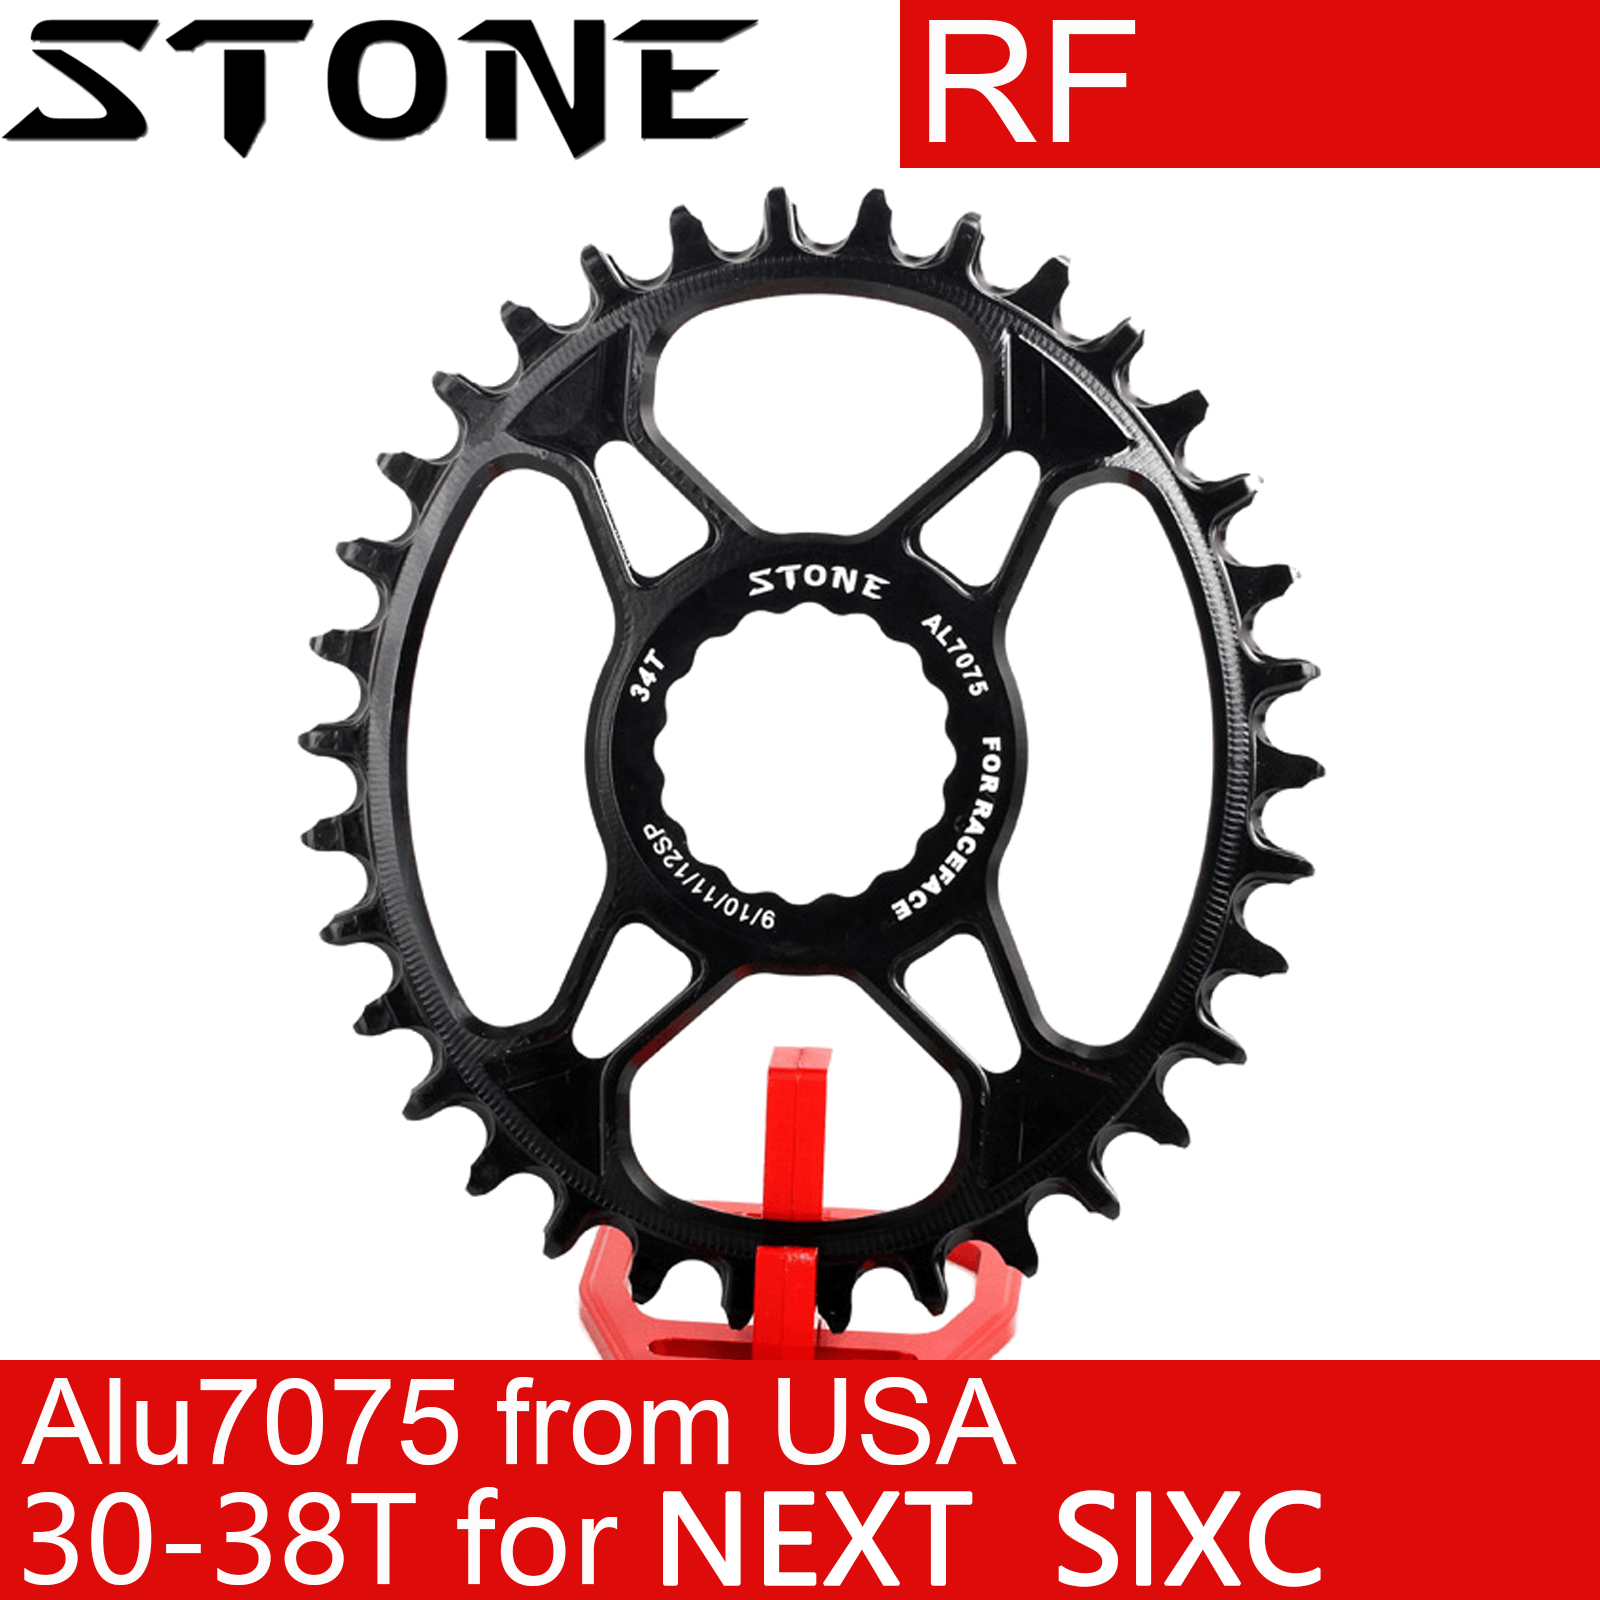 Stone Single Chainring 12s Direct Mount for RACEFACE next sl sixc Atlas Cinch